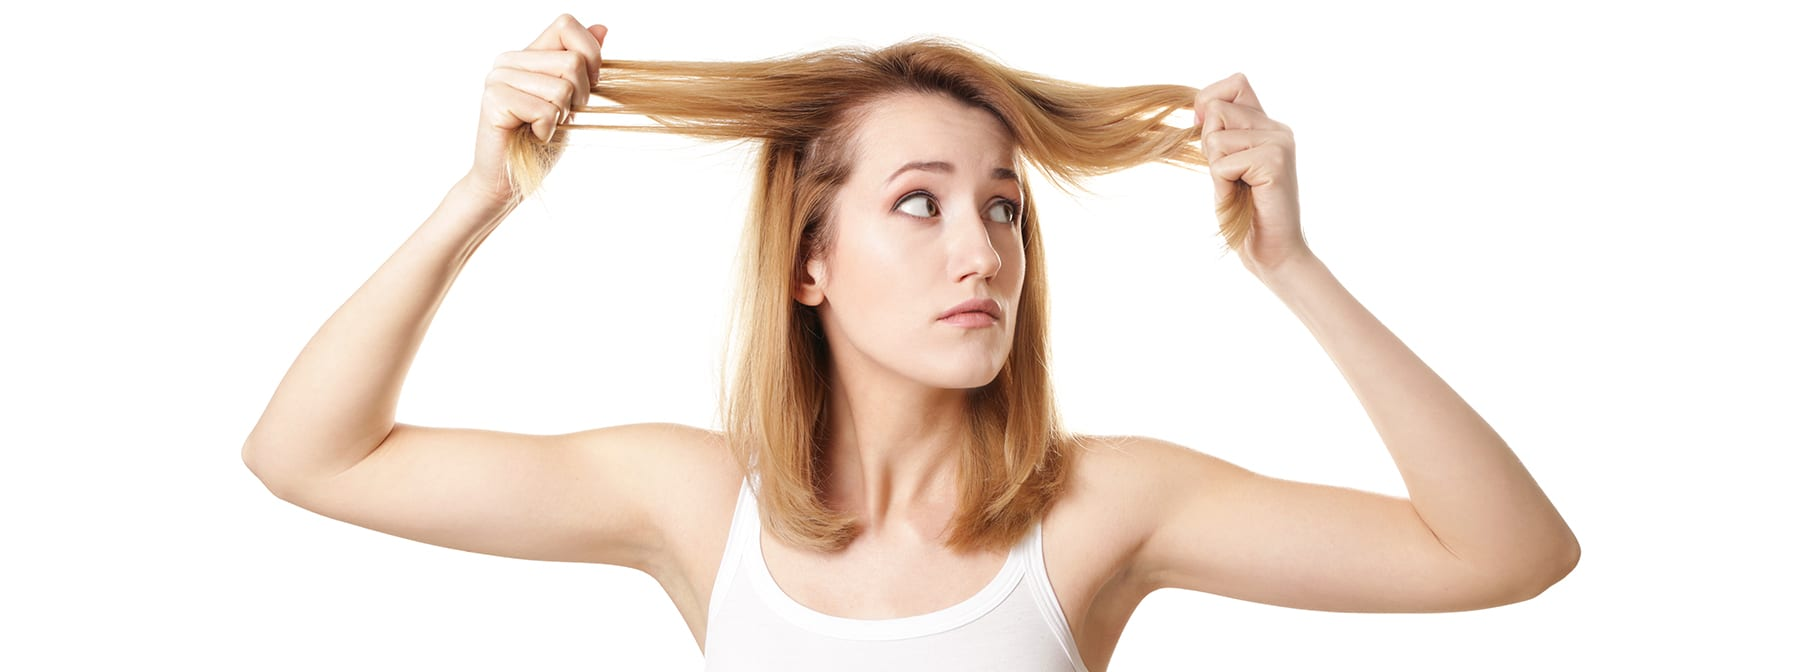 The Two Ingredients that Help Hair Loss in Women